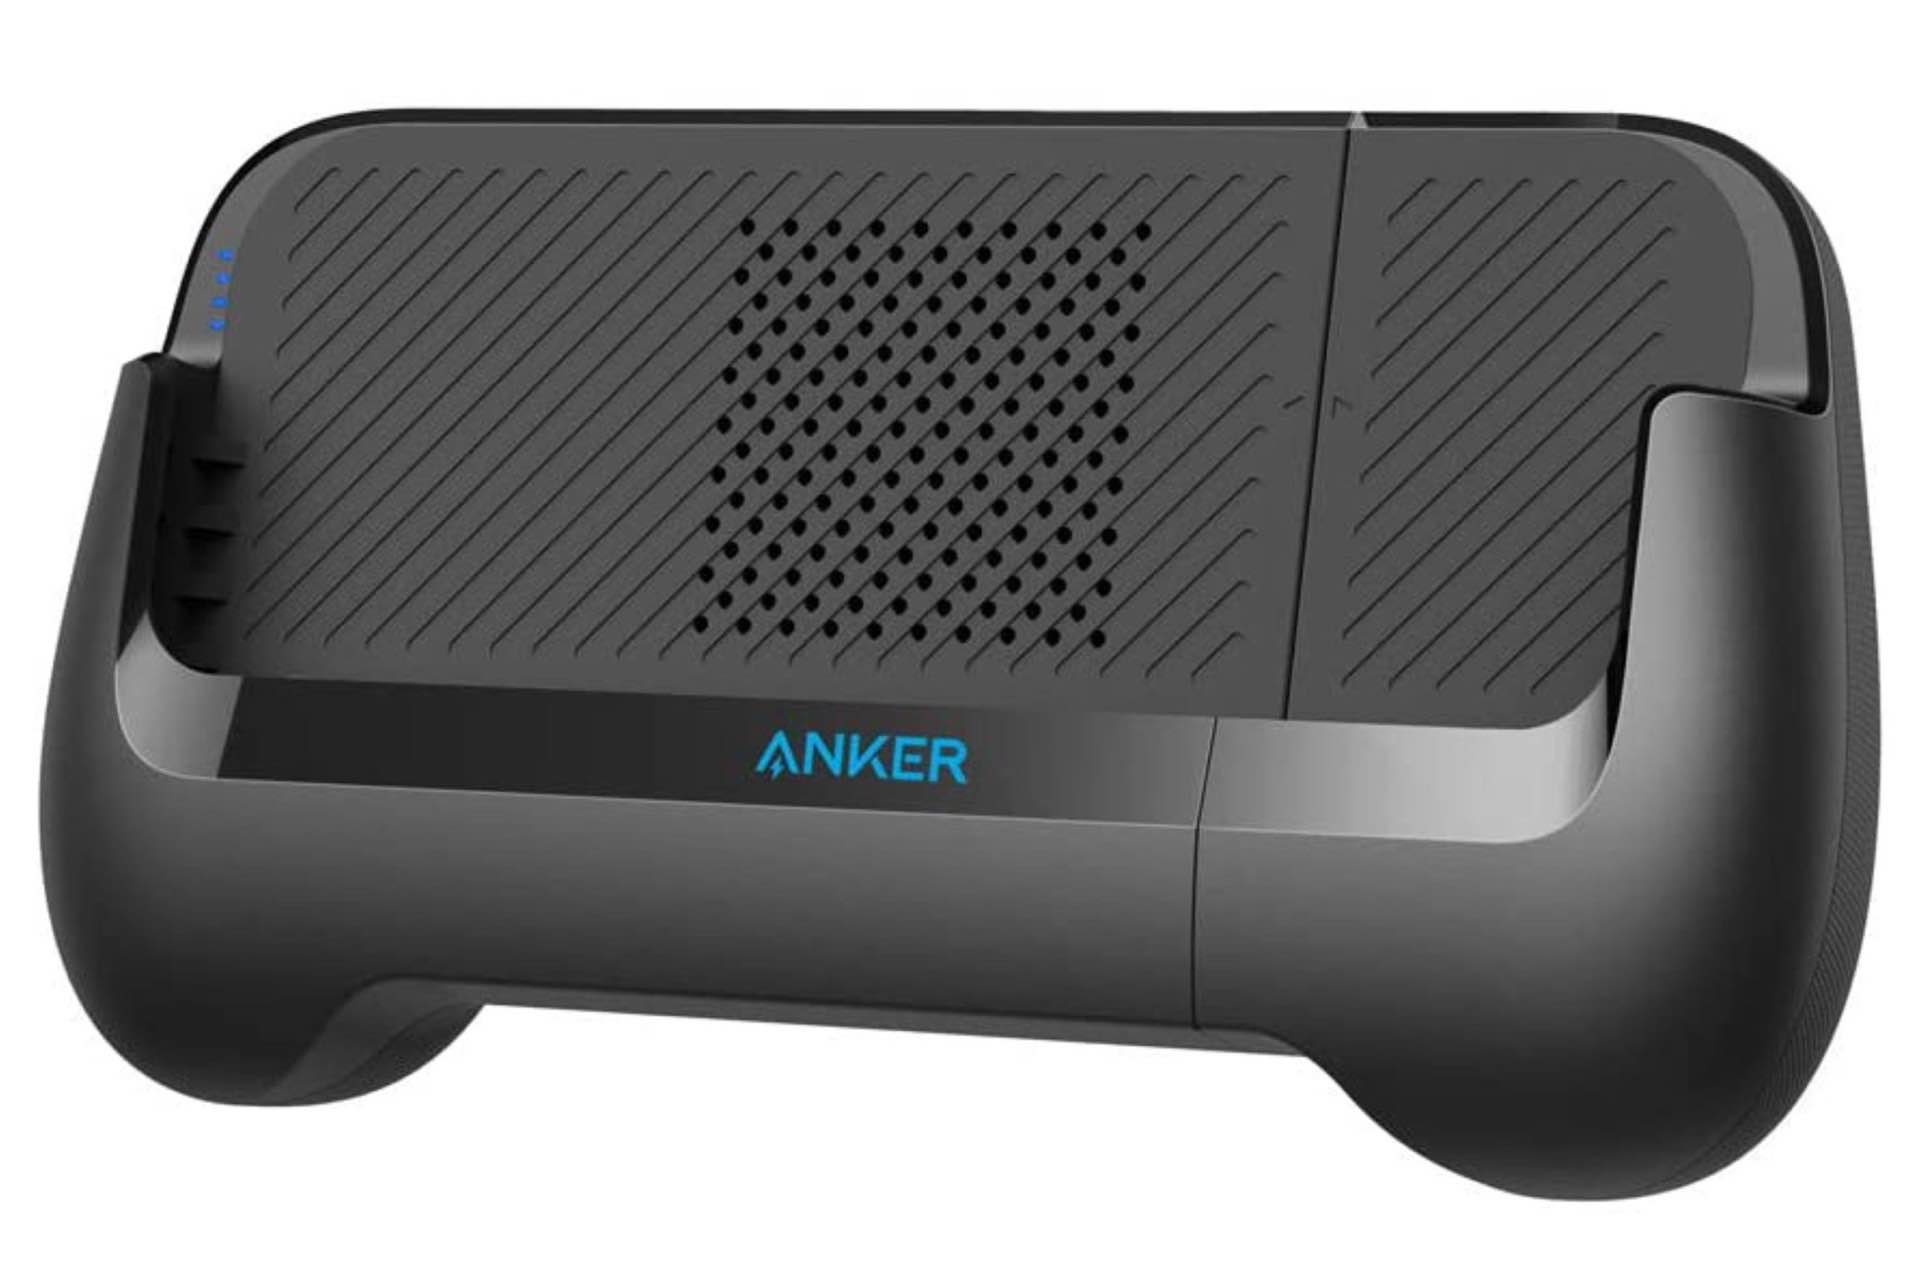 anker-powercore-play-6k-mobile-gaming-grip-power-bank